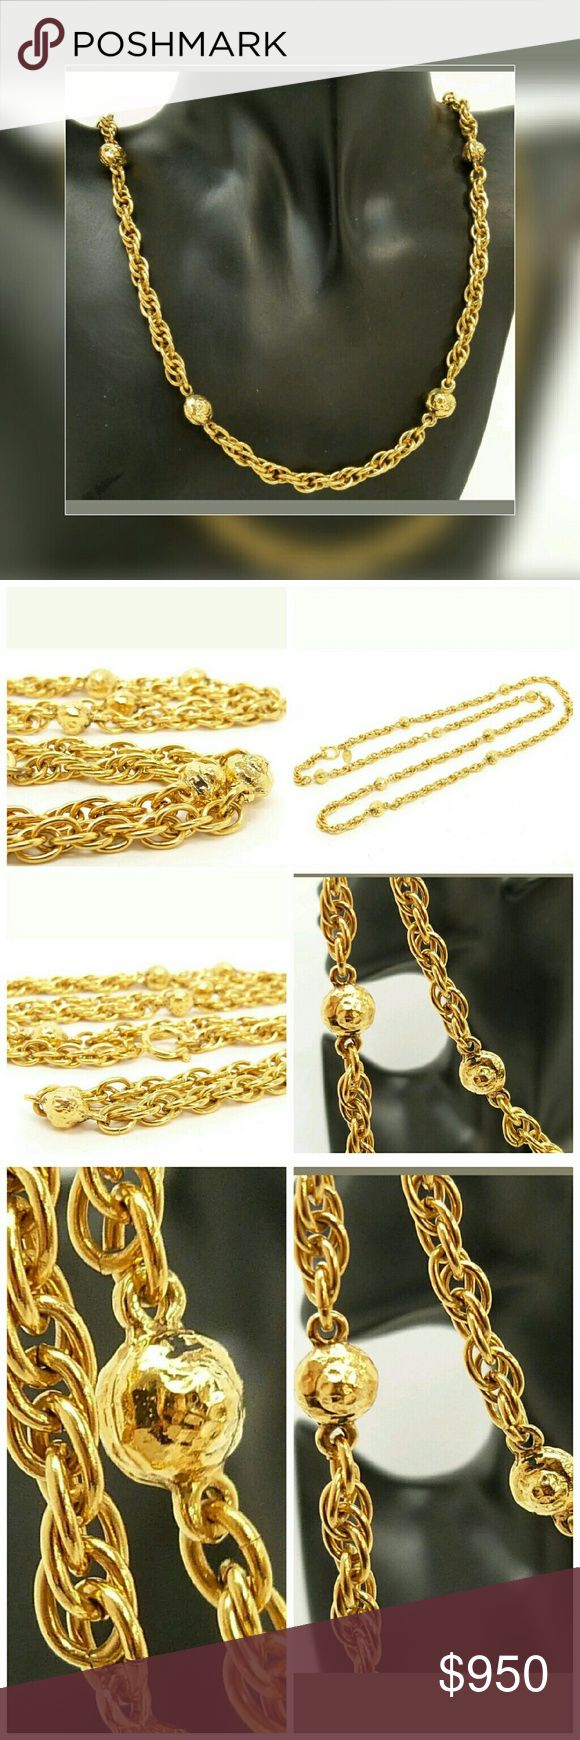 """🍃🌸Chanel Gold Chain Necklace Authentic long gold chain necklace with CC logo charms. Can be worn as a long necklace or doubled up to make 2 tier necklace. 36"""" length Authentic Hat charm has been added to make this a one of a kind unique necklace. CHANEL Jewelry Necklaces"""